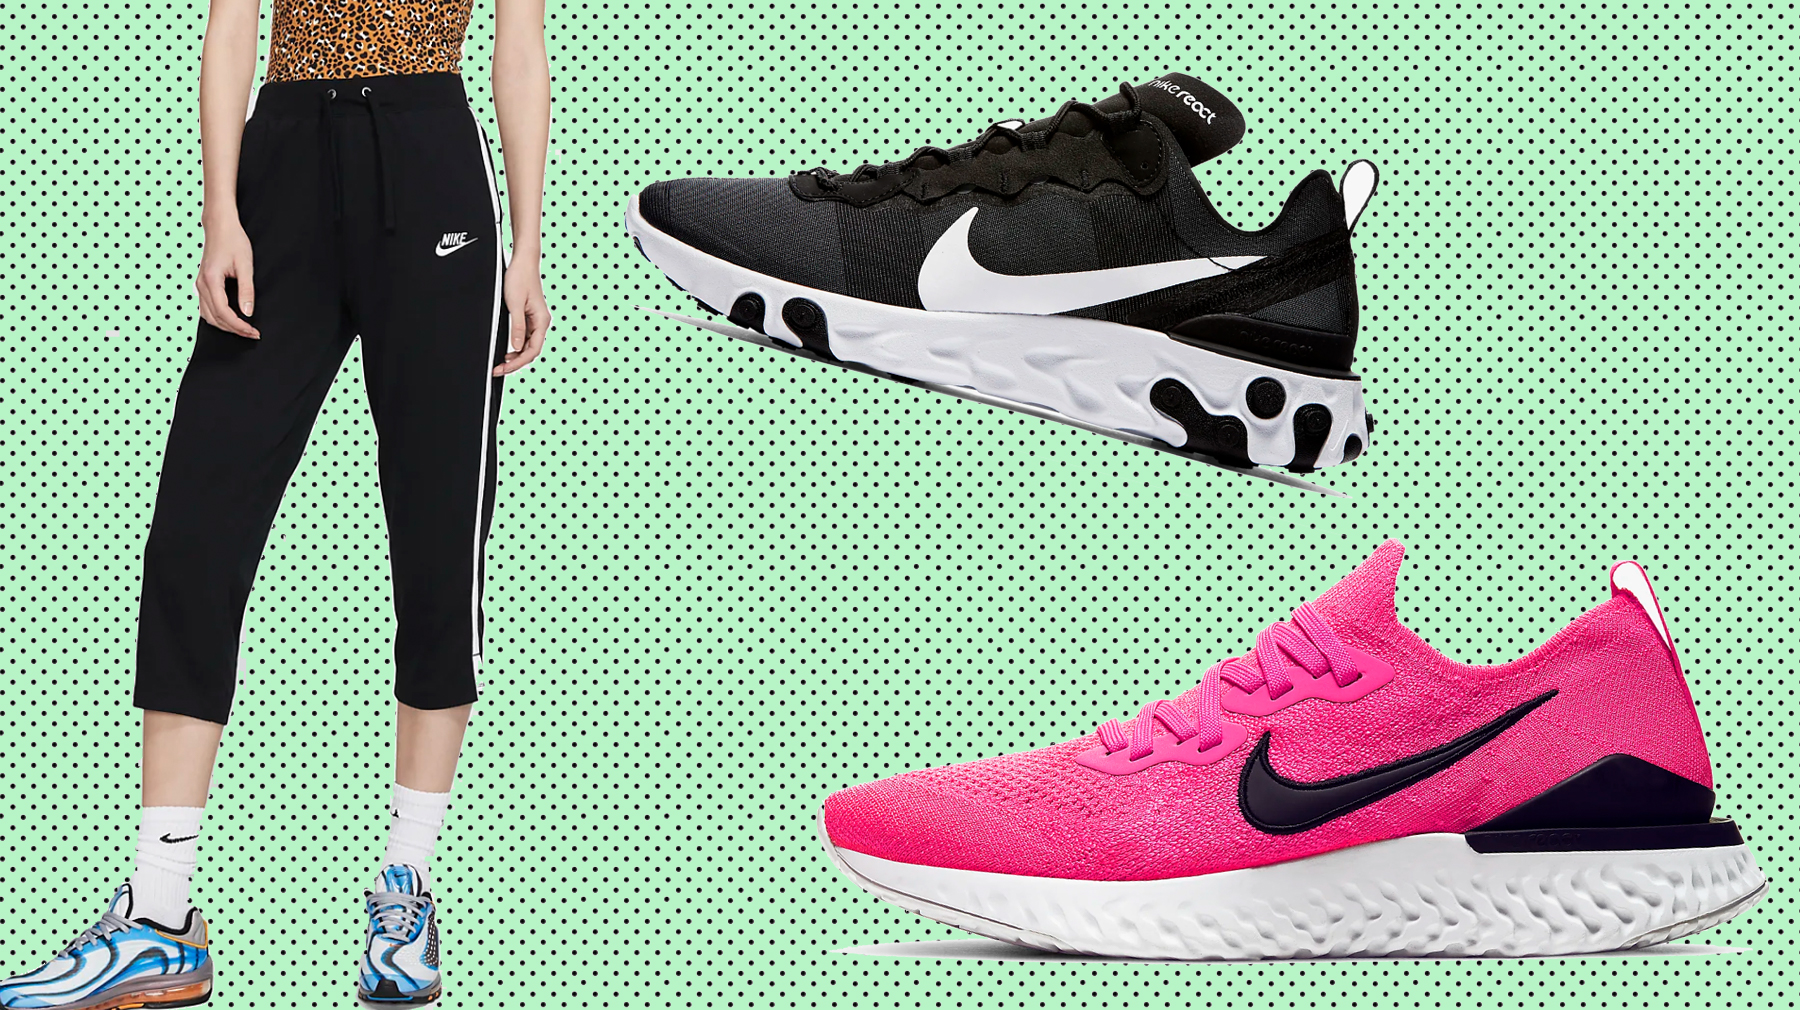 Sollozos Hambre frío  Nike Black Friday 2019: Apparel, shoes and more are up to 50% off | CNN  Underscored